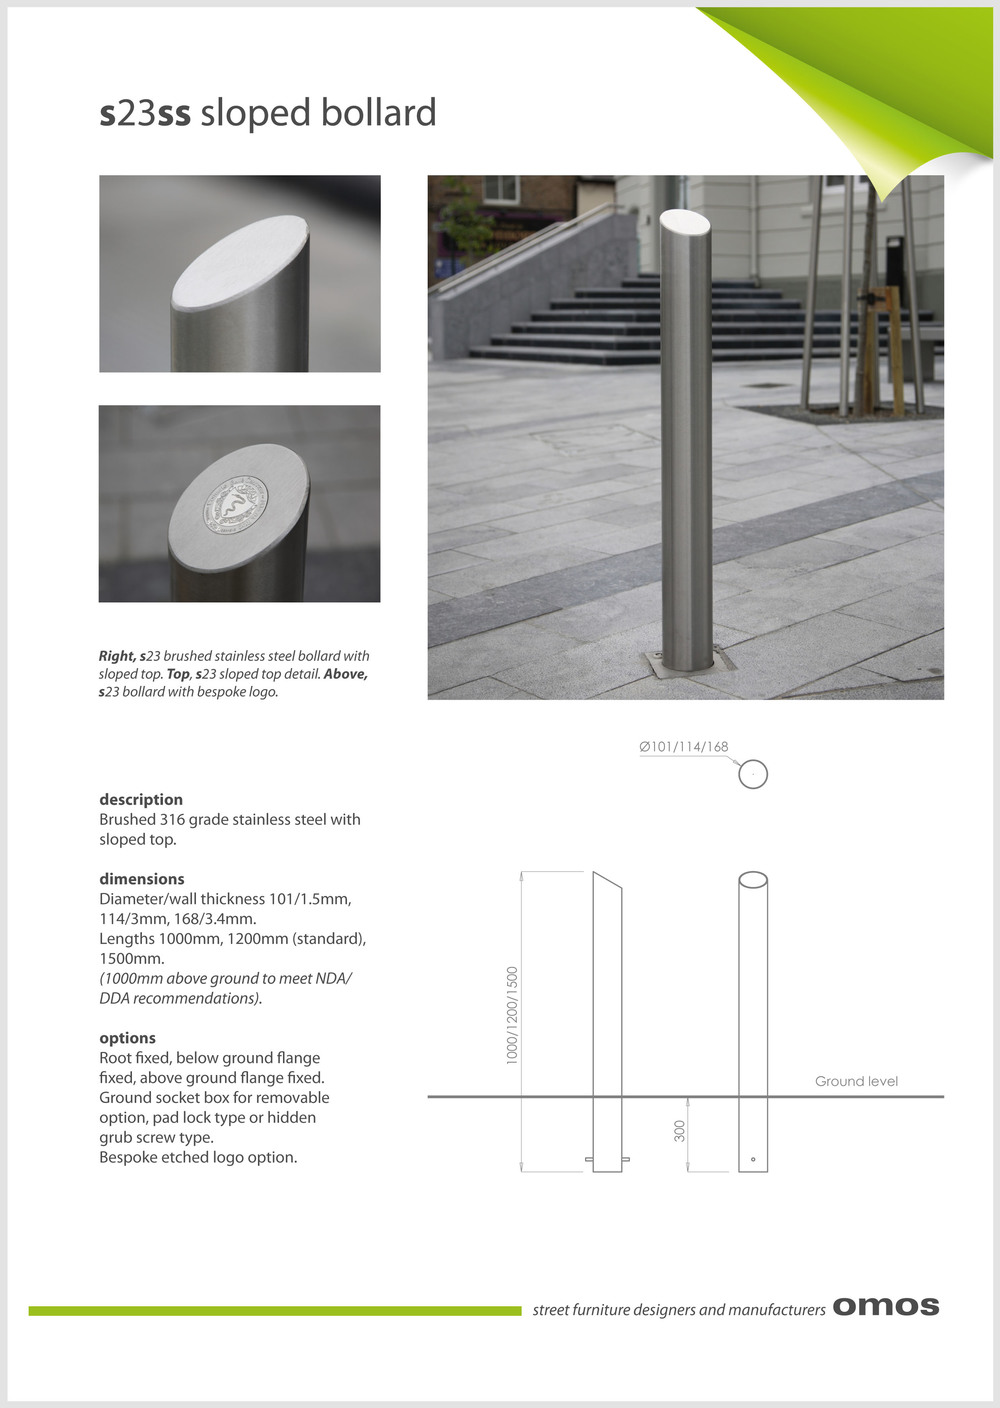 s23ss sloped bollard data sheet.jpg